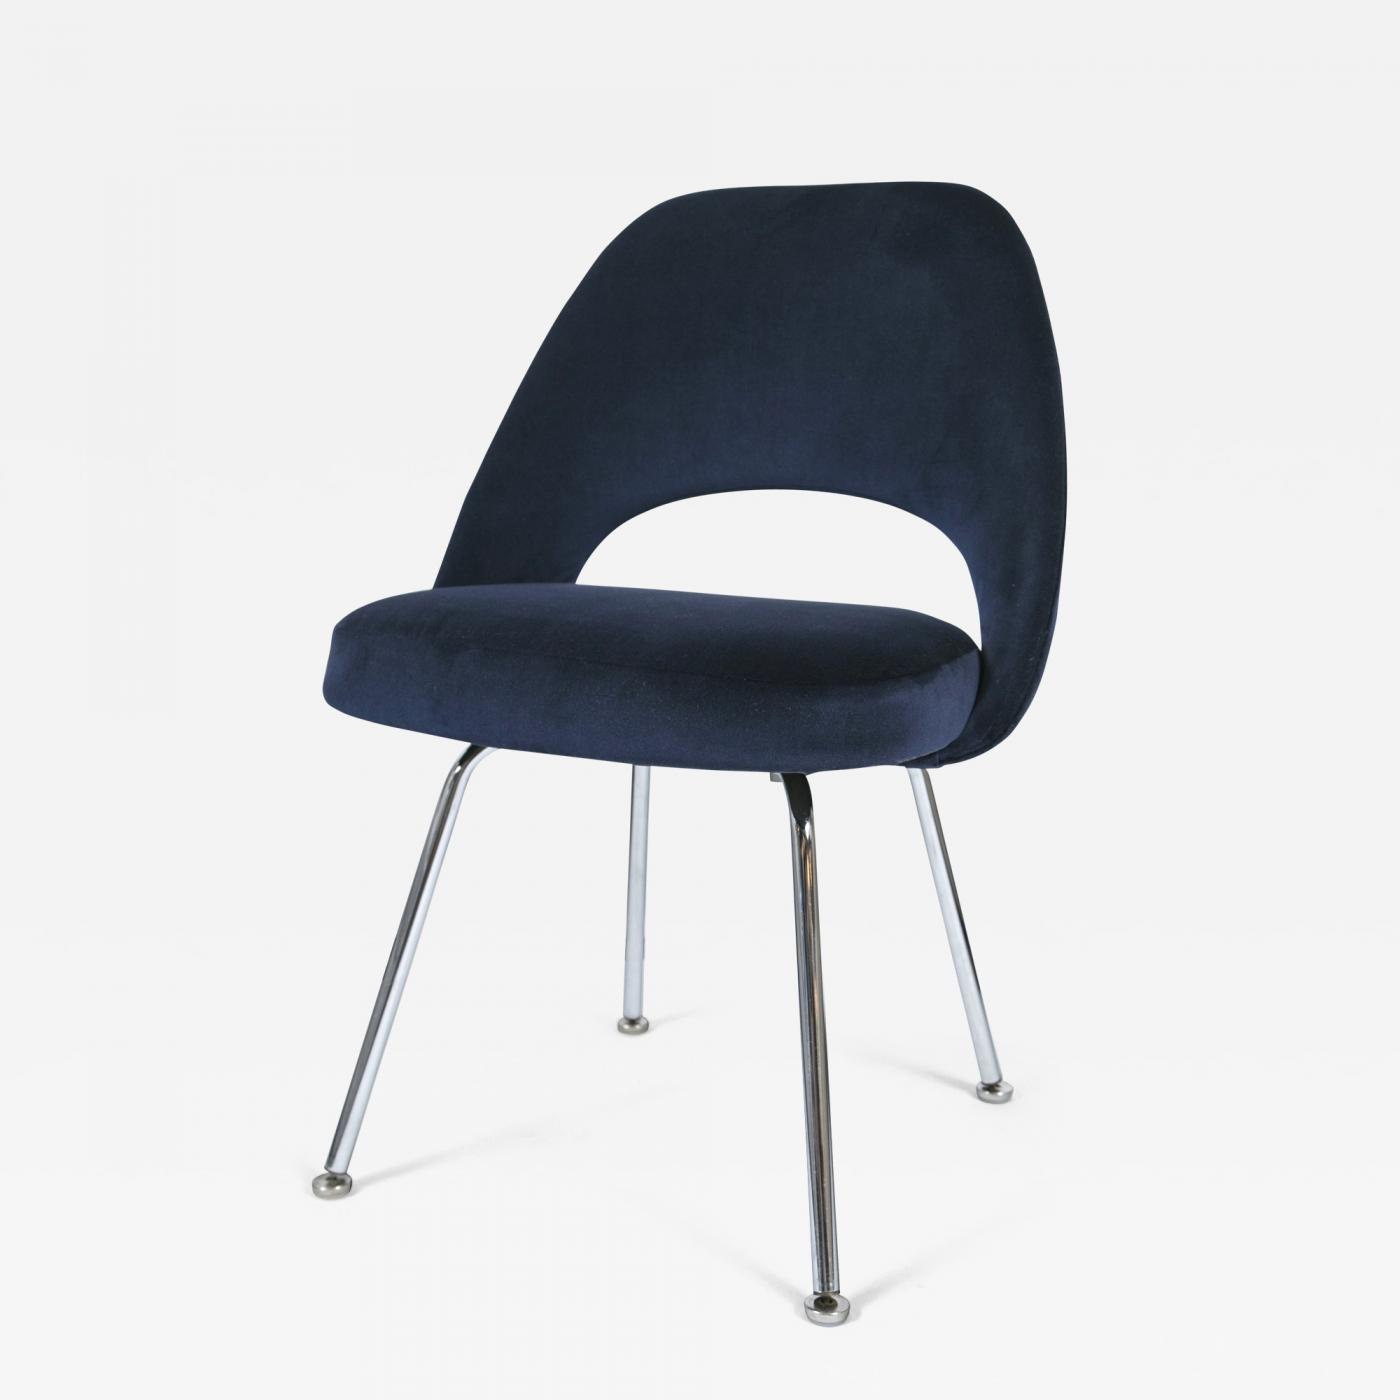 Eero Saarinen Saarinen Executive Armless Chair in Navy Velvet